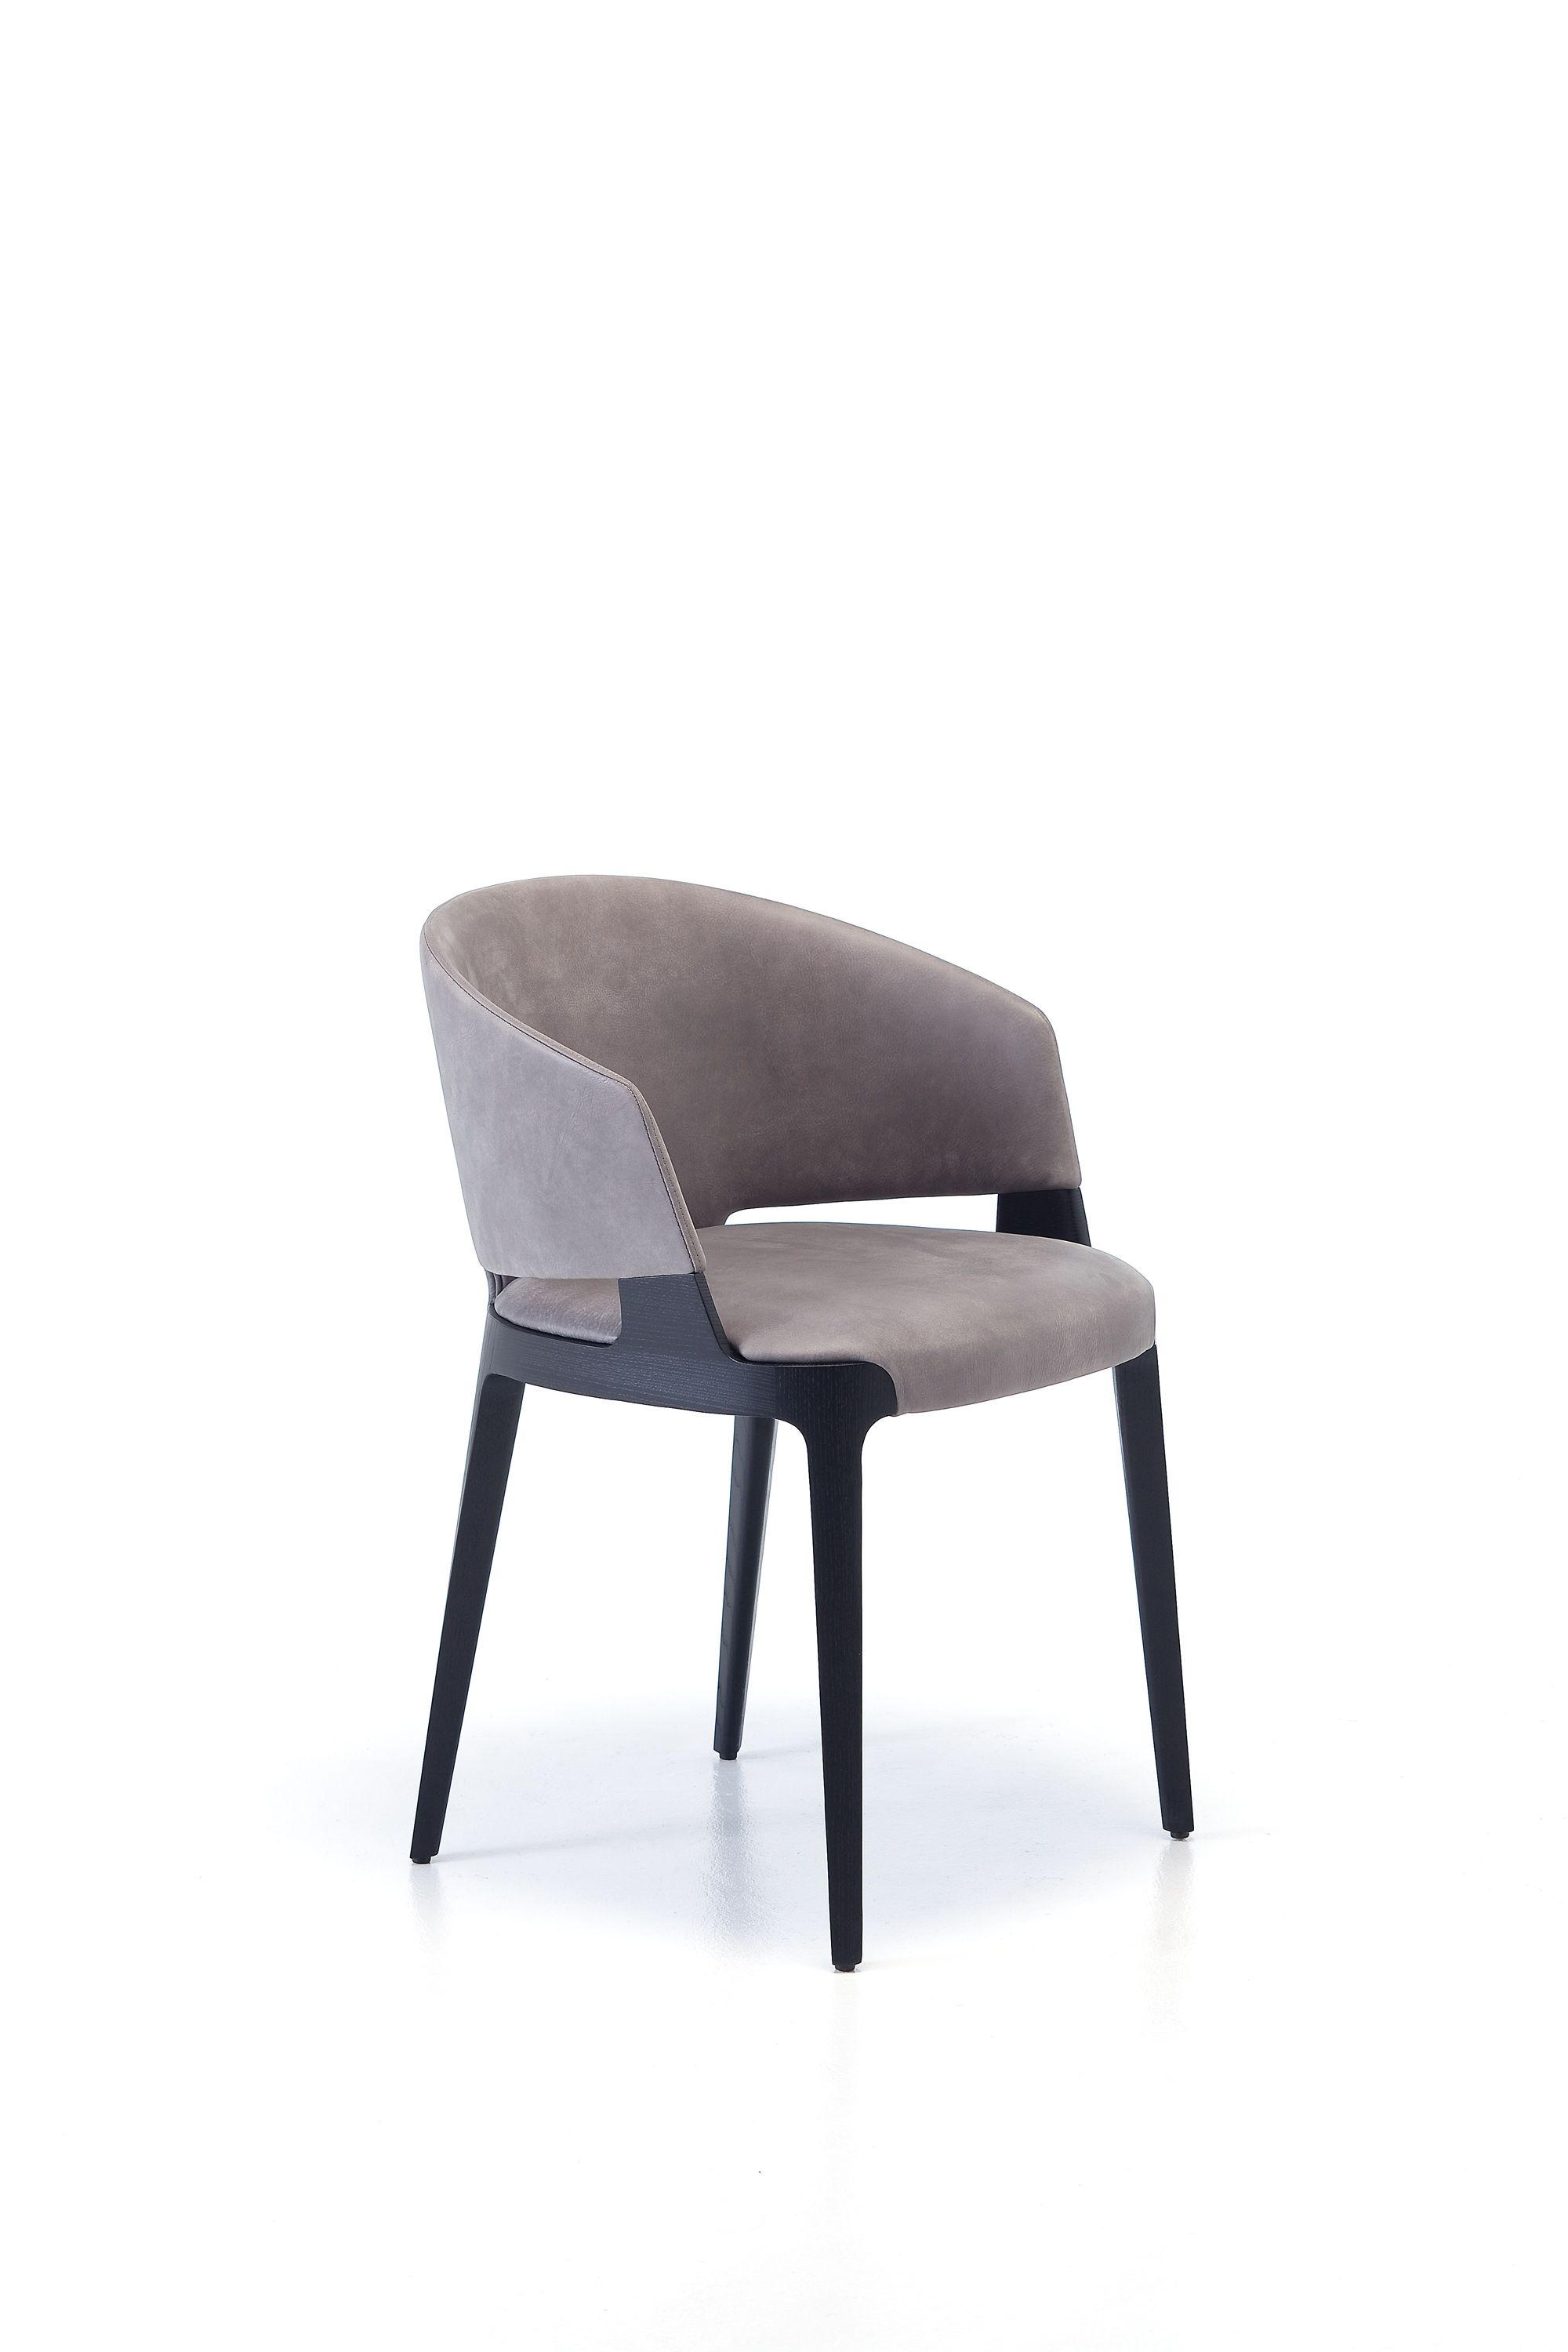 Potocco Velis Tub Chair Dining Chairs Furniture Dining Chairs Luxury Chairs